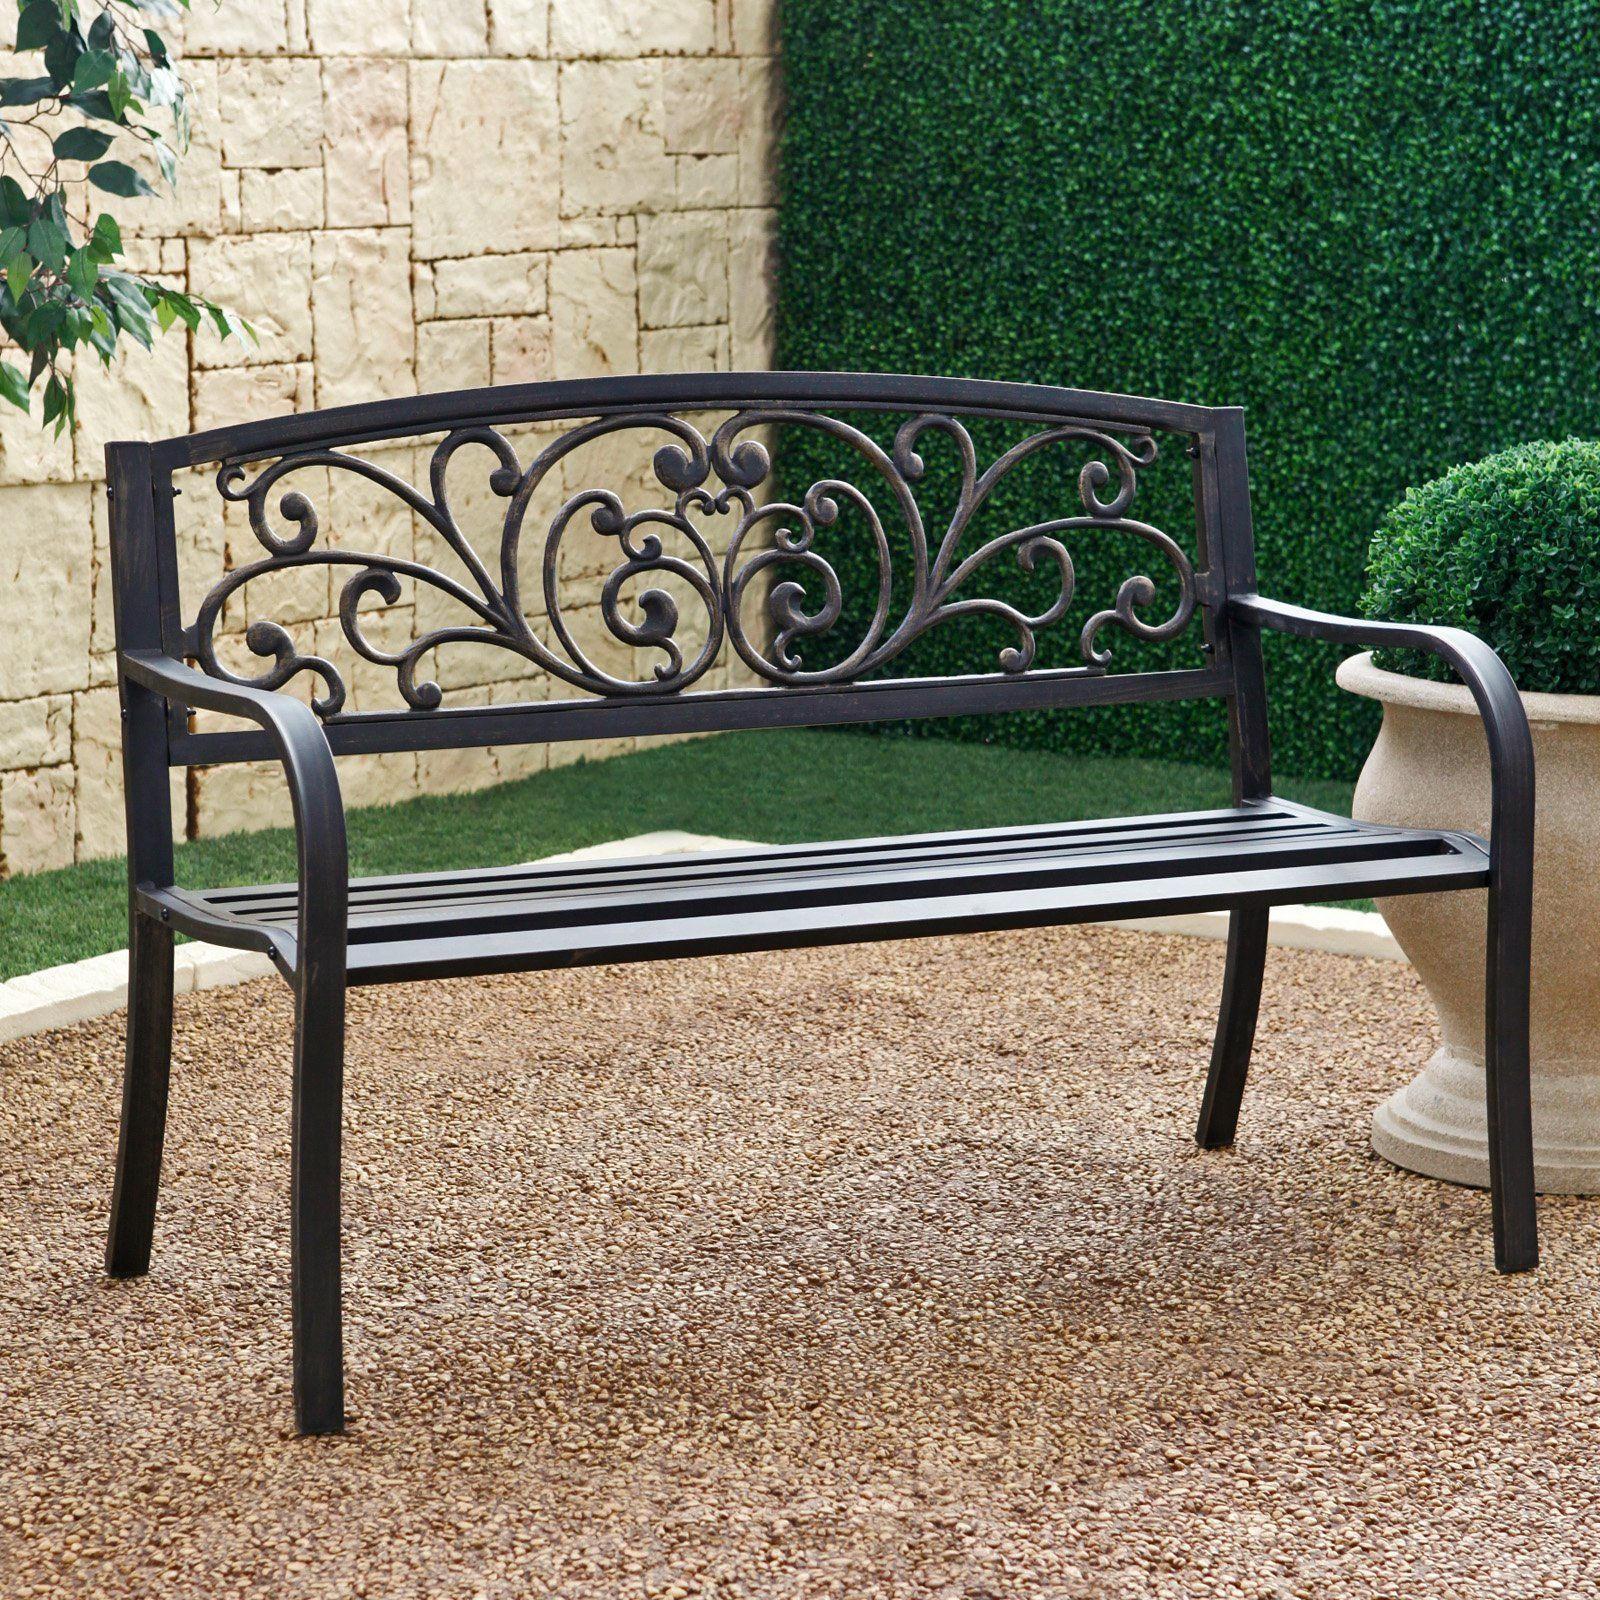 Have To Have It Coral Coast Metal Scrolling Hearts Curved Back Garden Bench